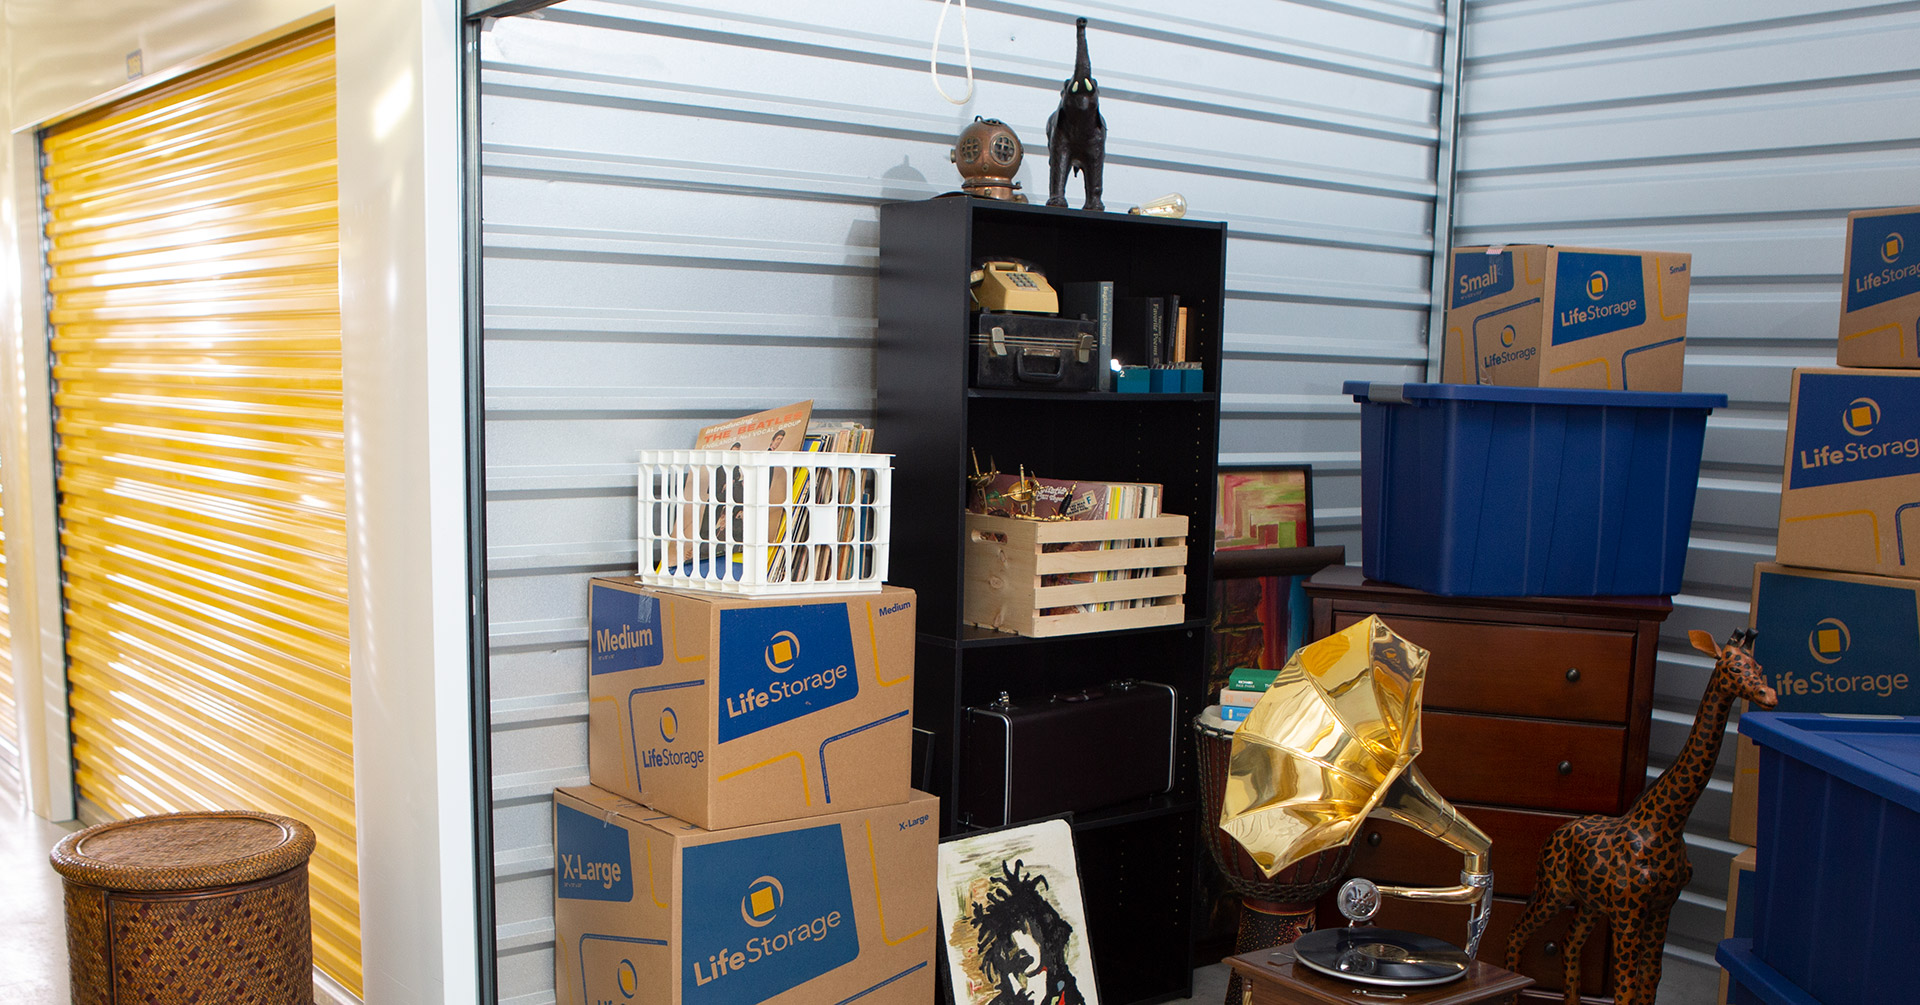 10x15 storage unit with trophies, boxes and other belongings